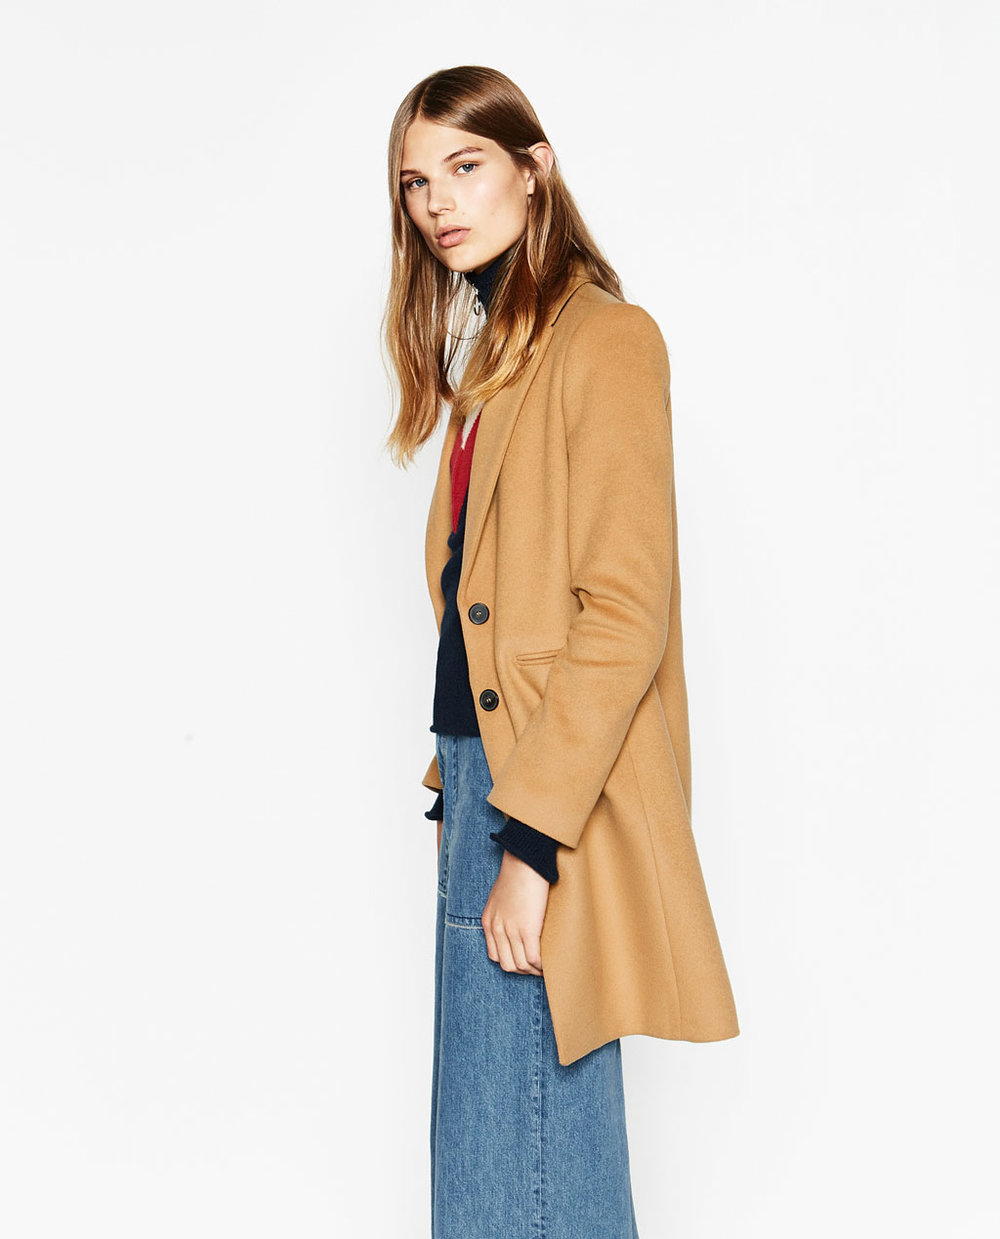 Masculine Coat in Camel